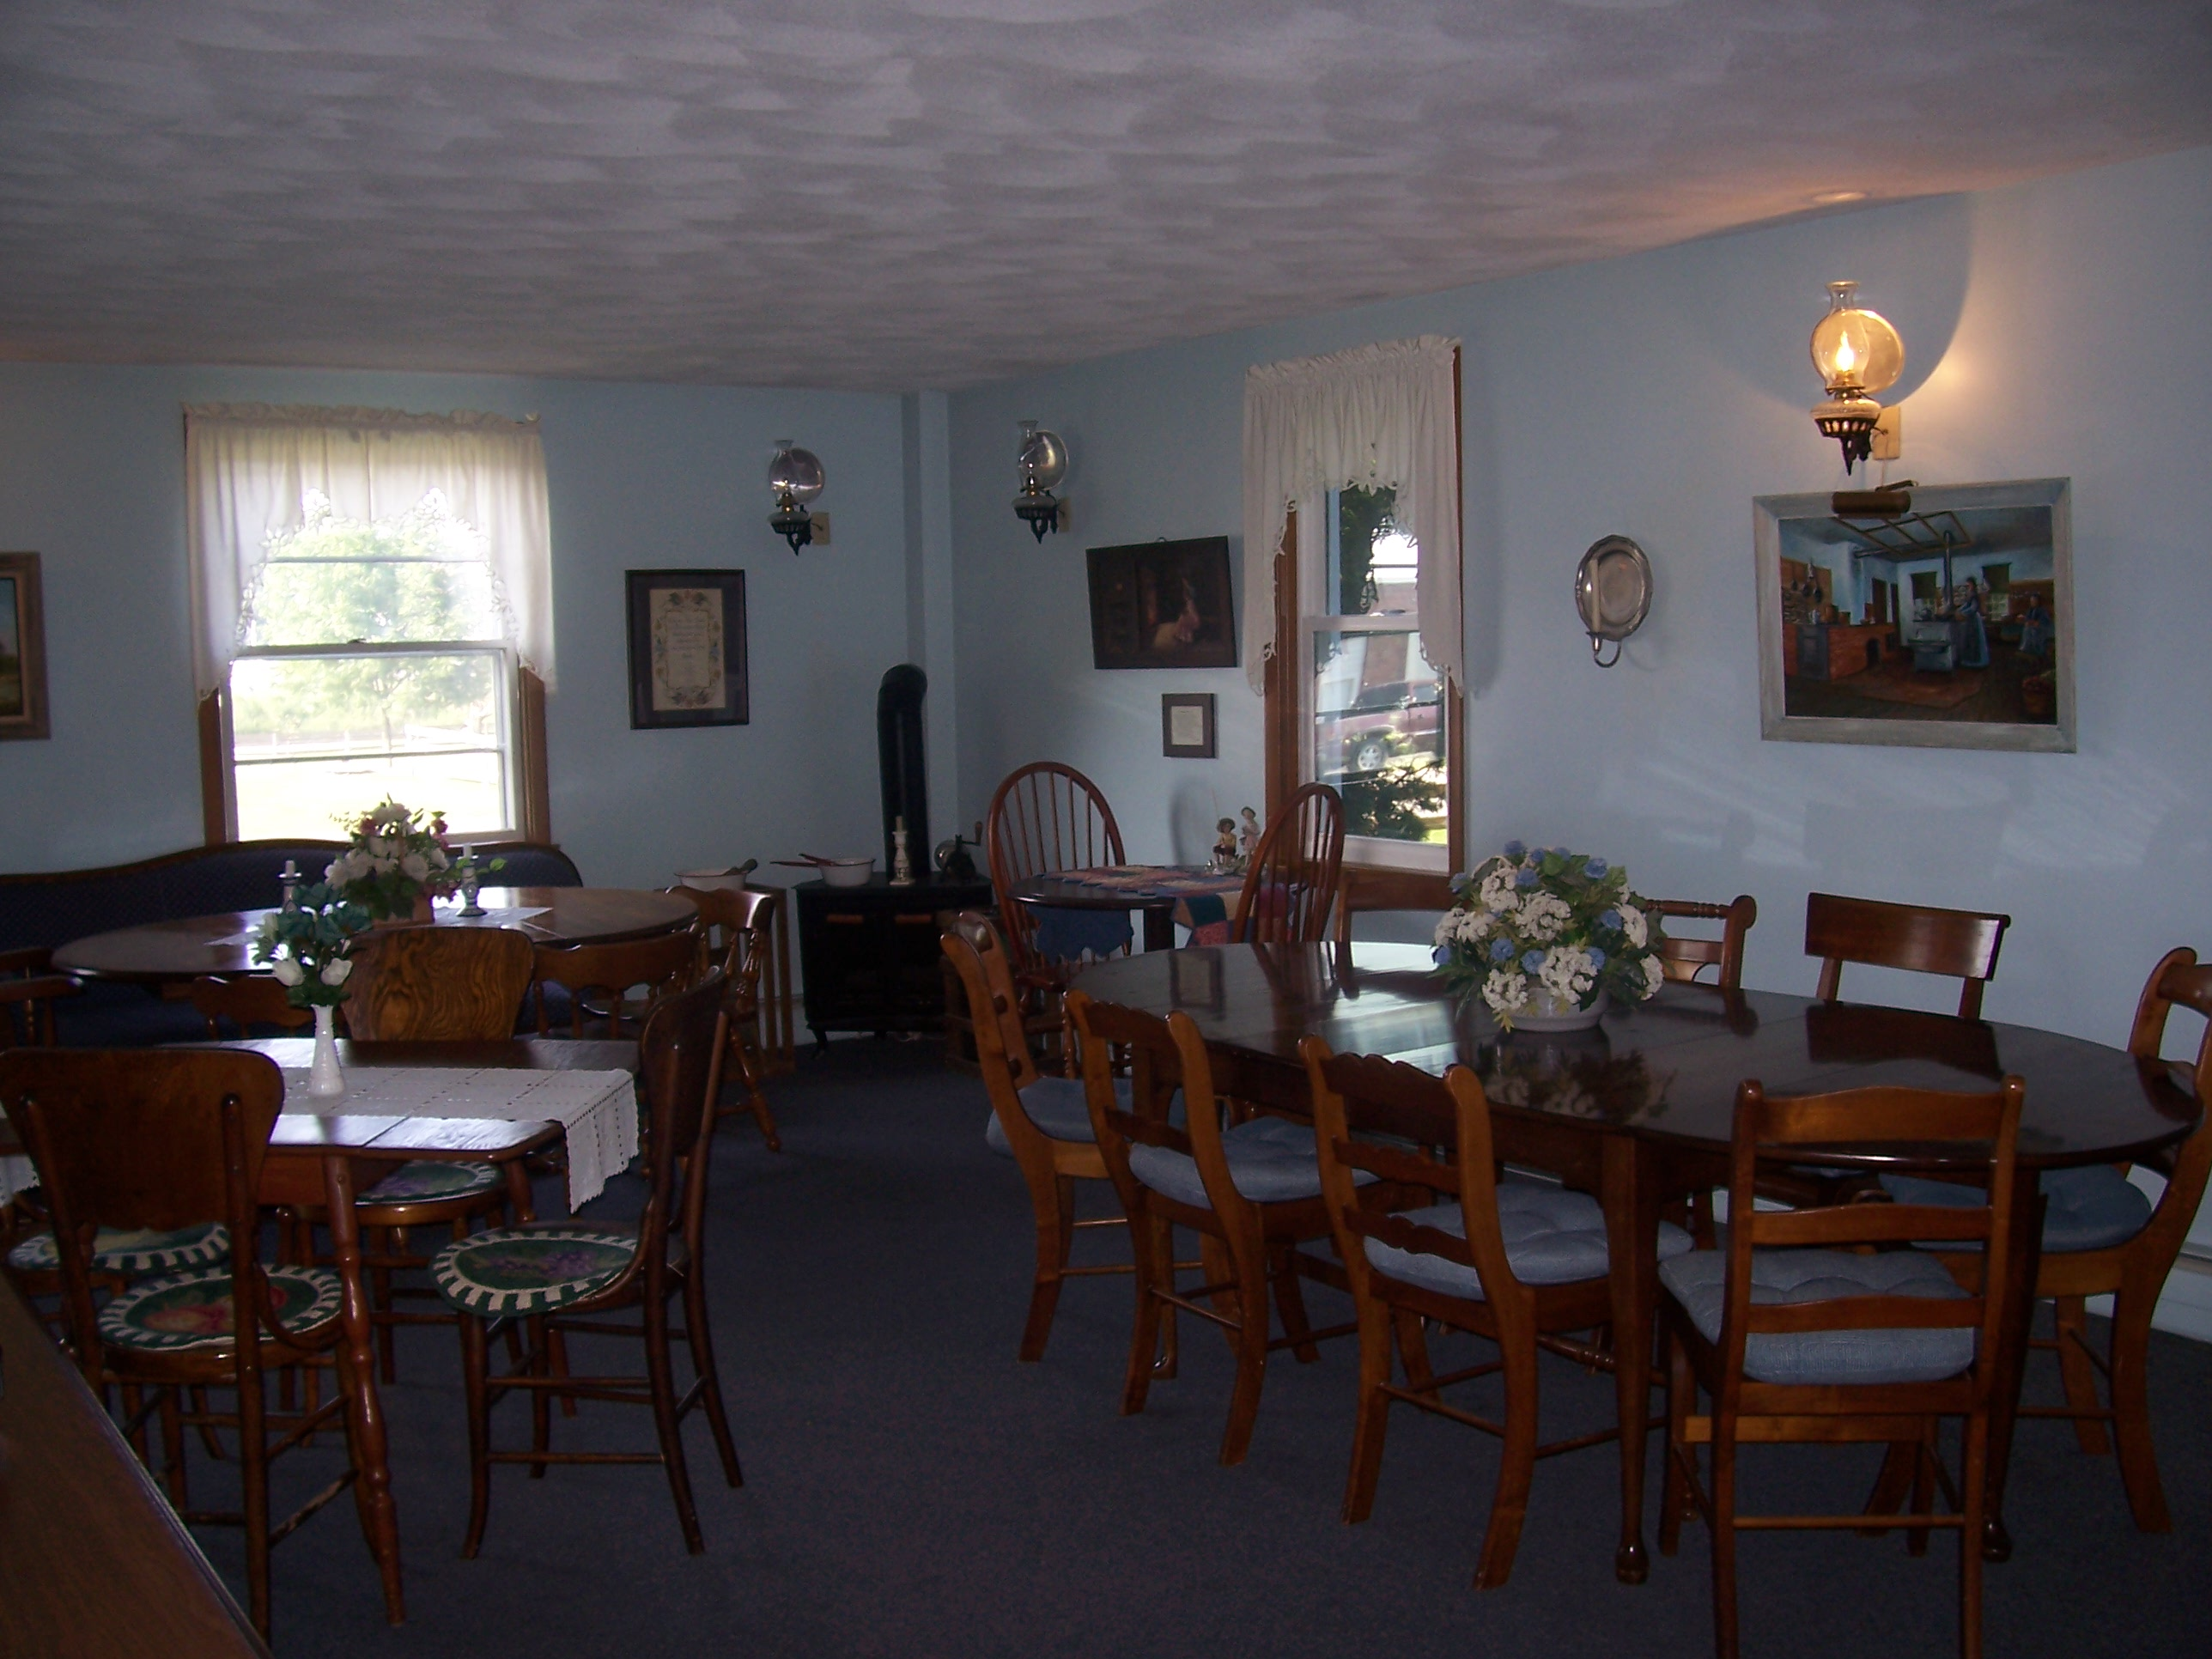 Die Hwimat Country Bed And Breakfast Of The Amana Colonies